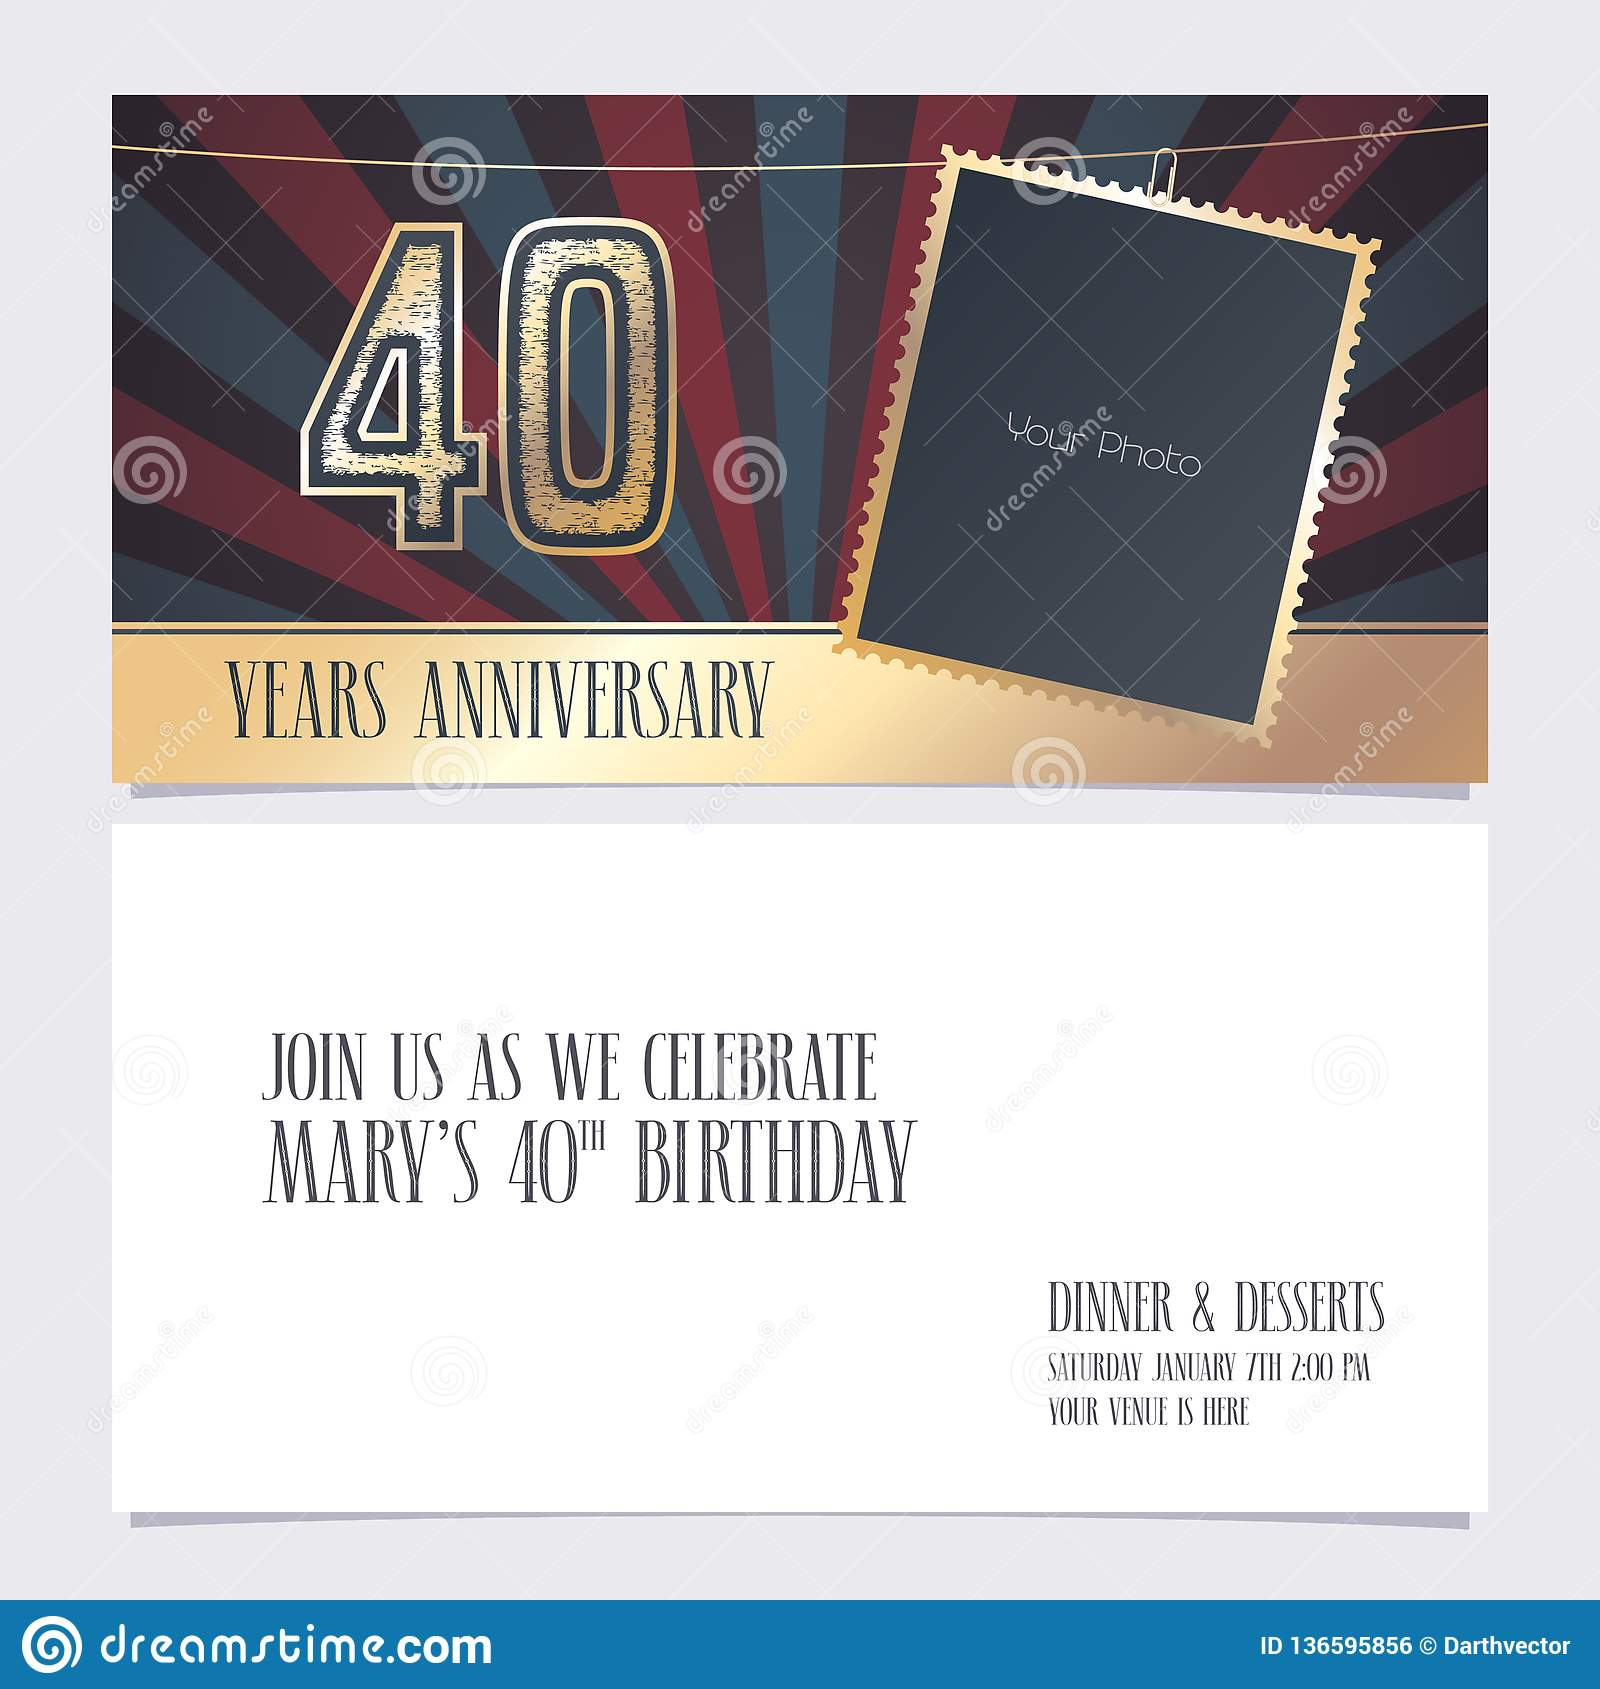 40 Years Anniversary Invitation Vector Illustration Graphic Design Element With Photo Frame For 40th Birthday Card Party Invite